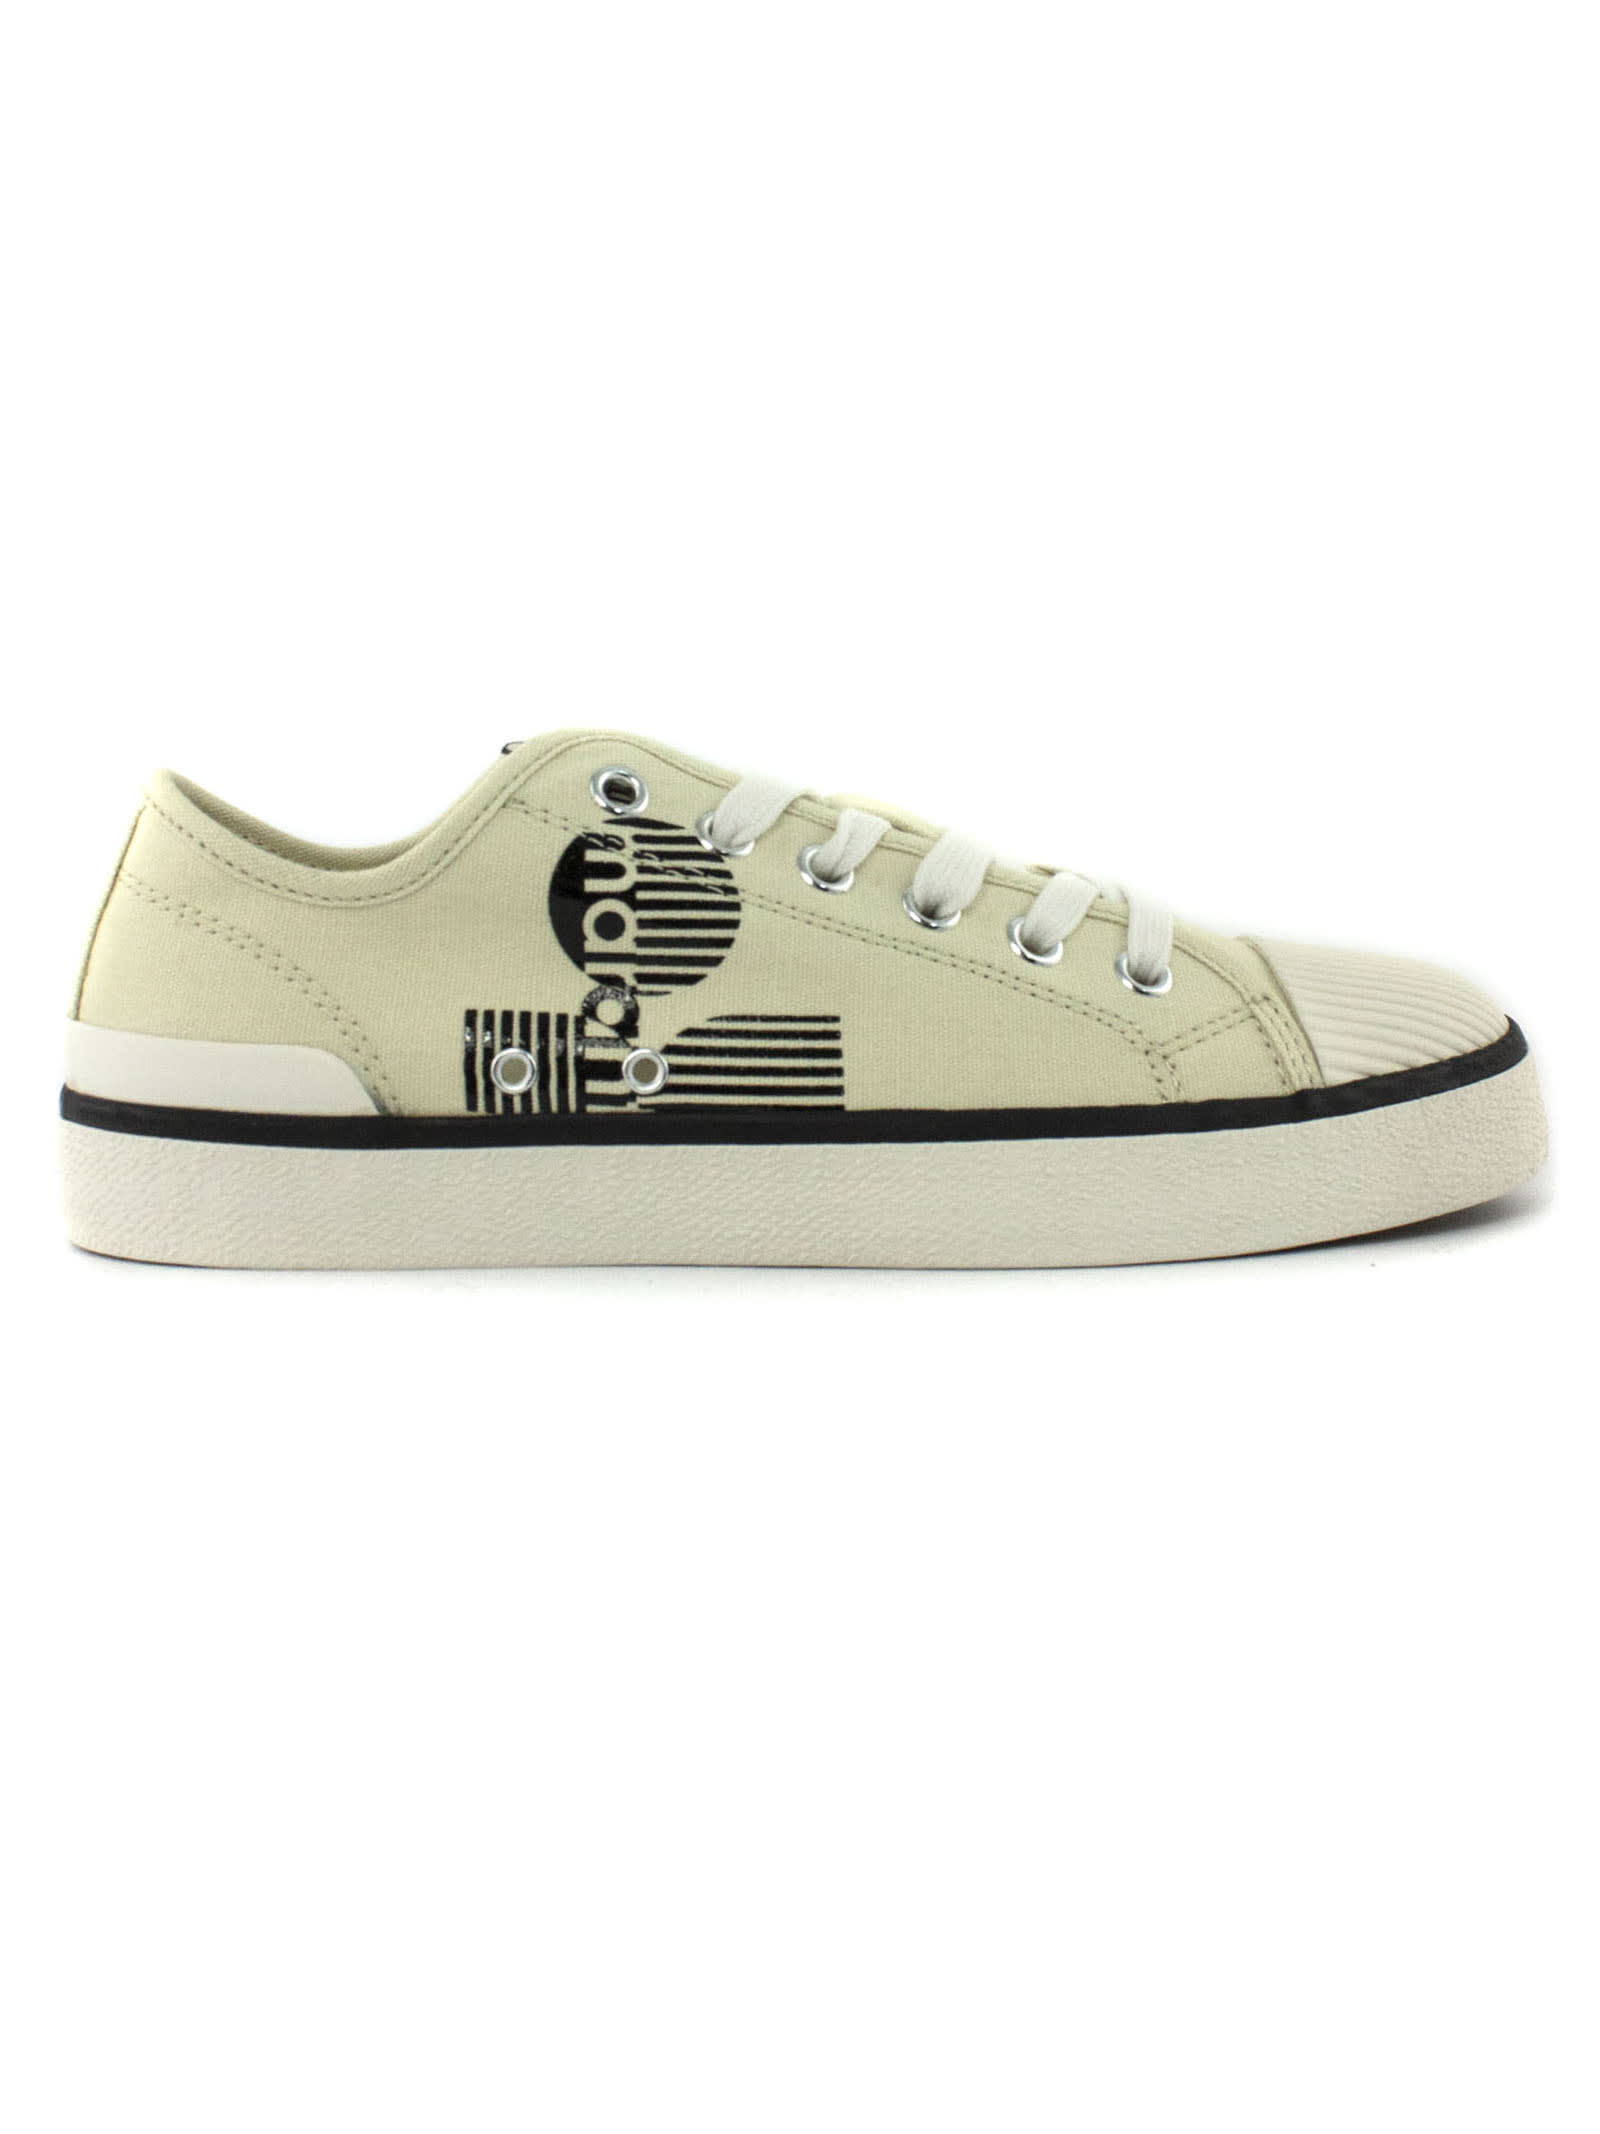 Isabel Marant White Cotton Sneakers